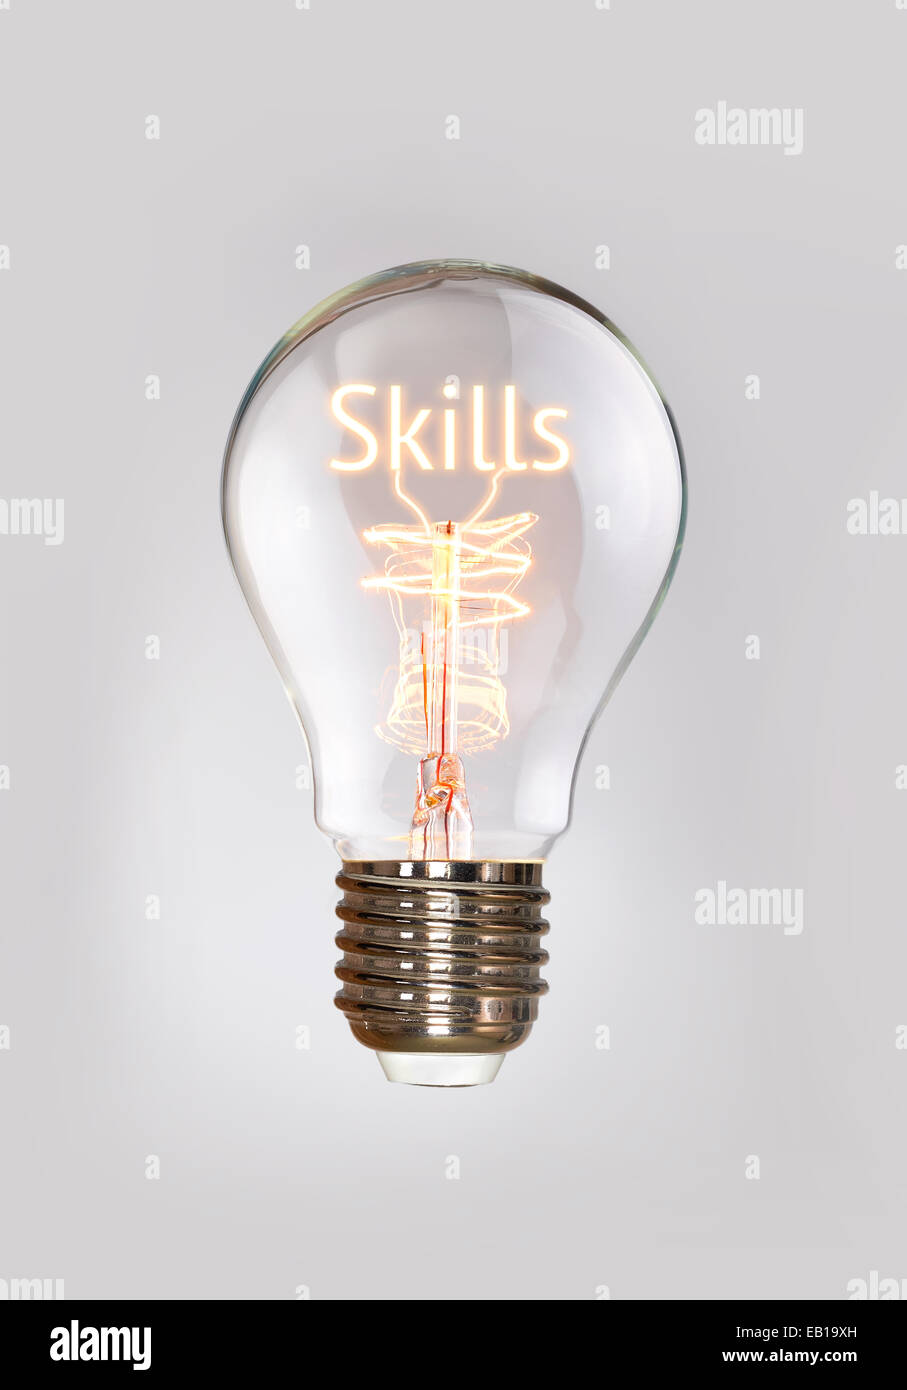 Skills concept in a filament lightbulb. - Stock Image